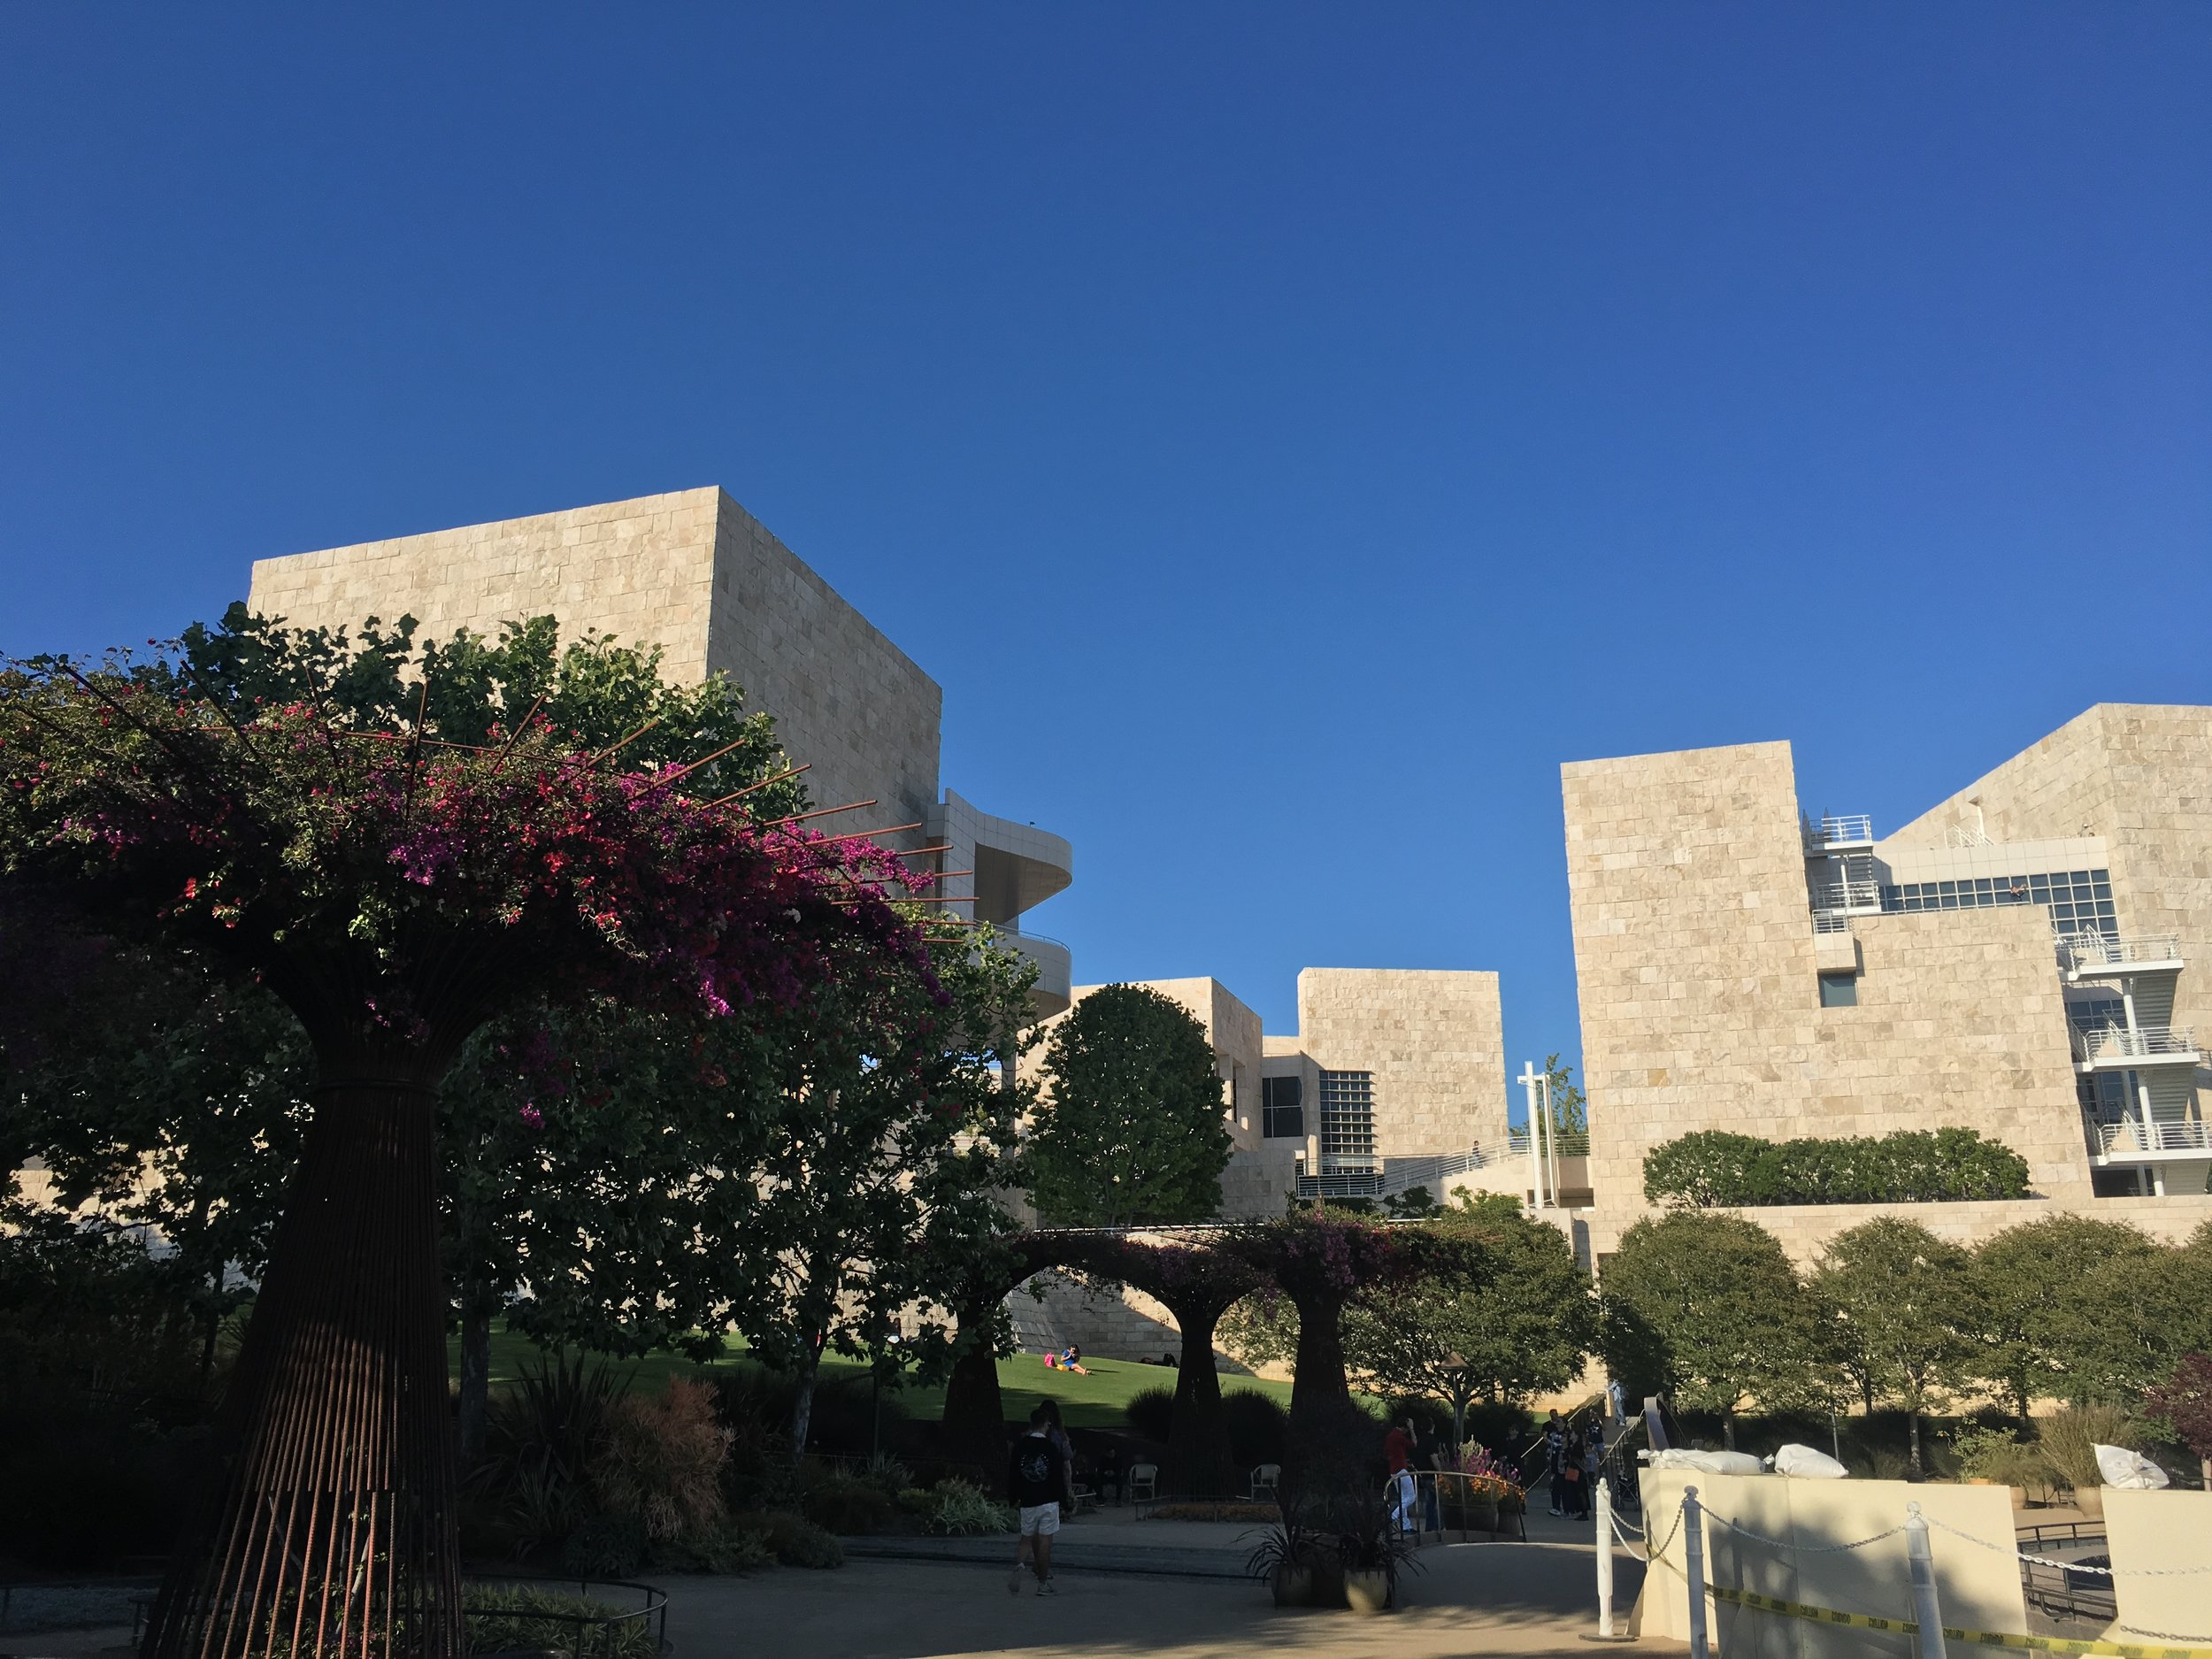 The Getty gardens contain numerous flowers, other plants,fountains, and quotes engraved on some stepping stones.